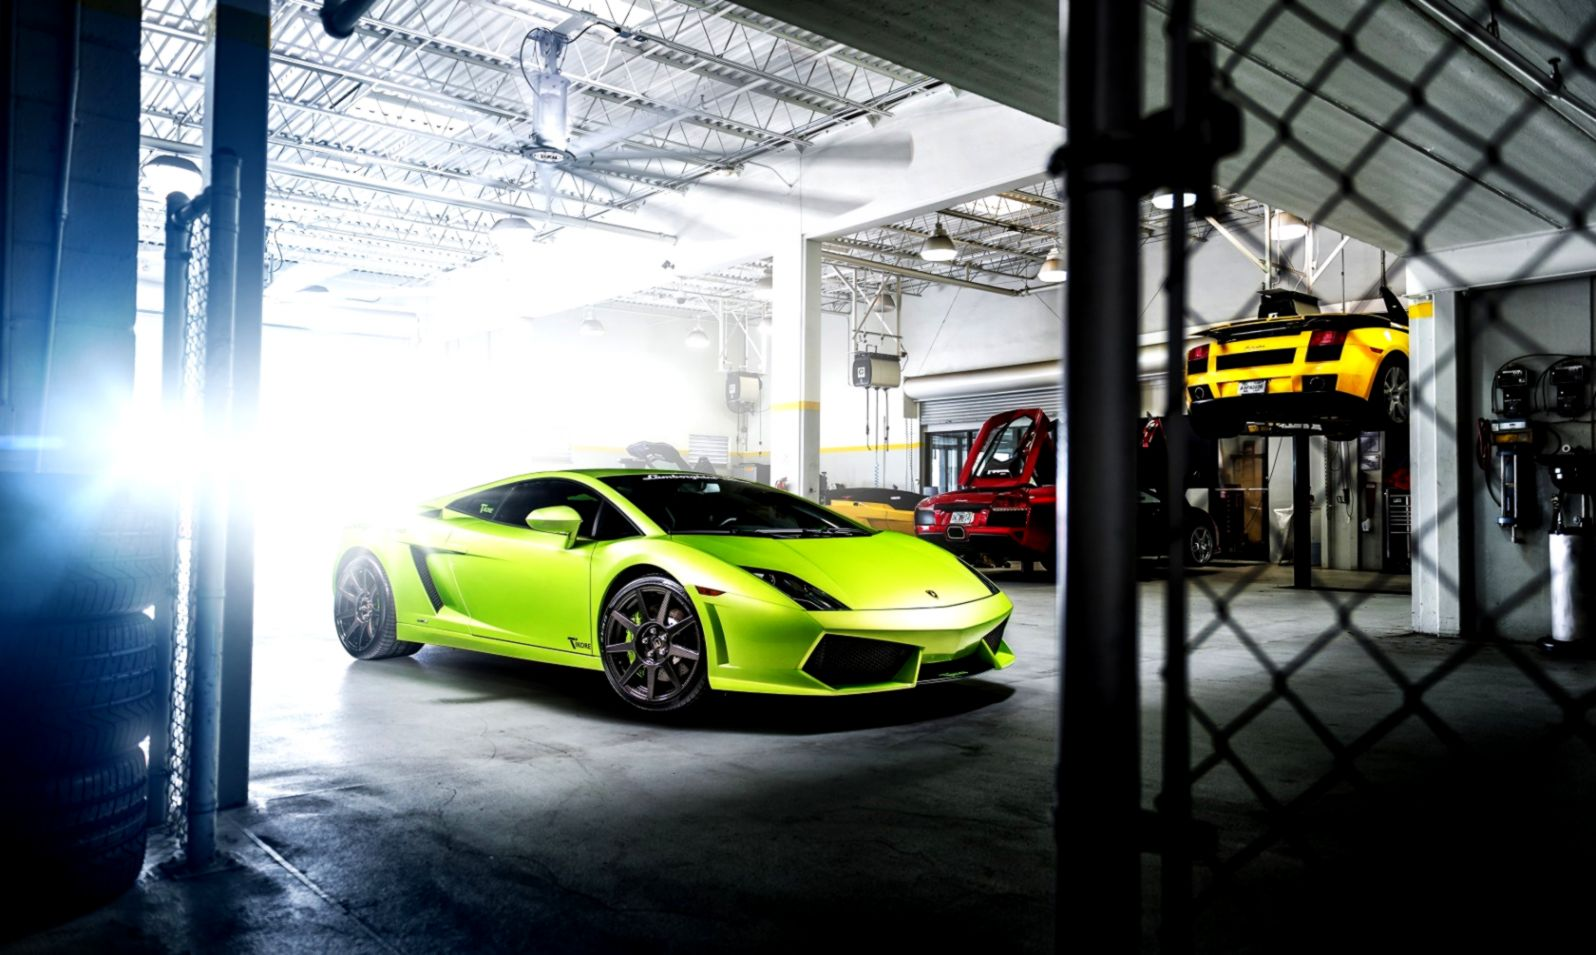 Lamborghini Gallardo Green Car Garage Hd Wallpaper Wallpapers Sinaga